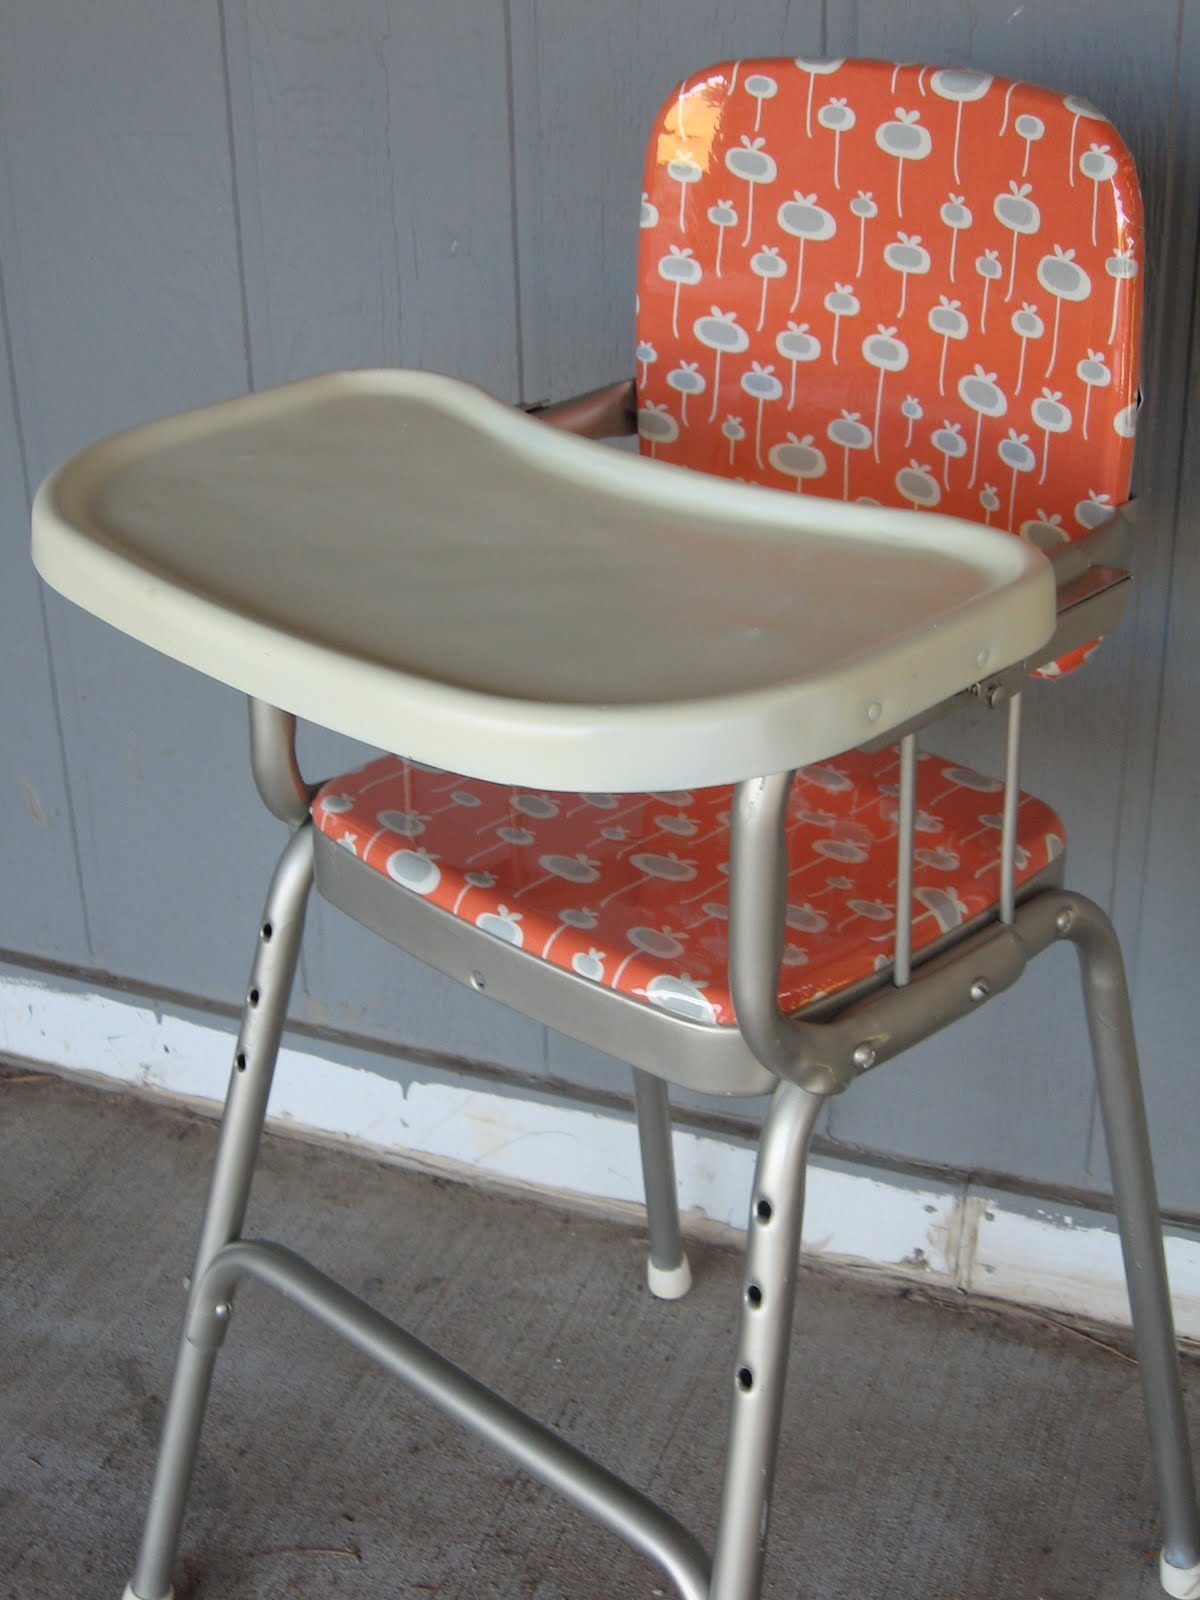 frozen knickers after vintage cosco high chair. Black Bedroom Furniture Sets. Home Design Ideas